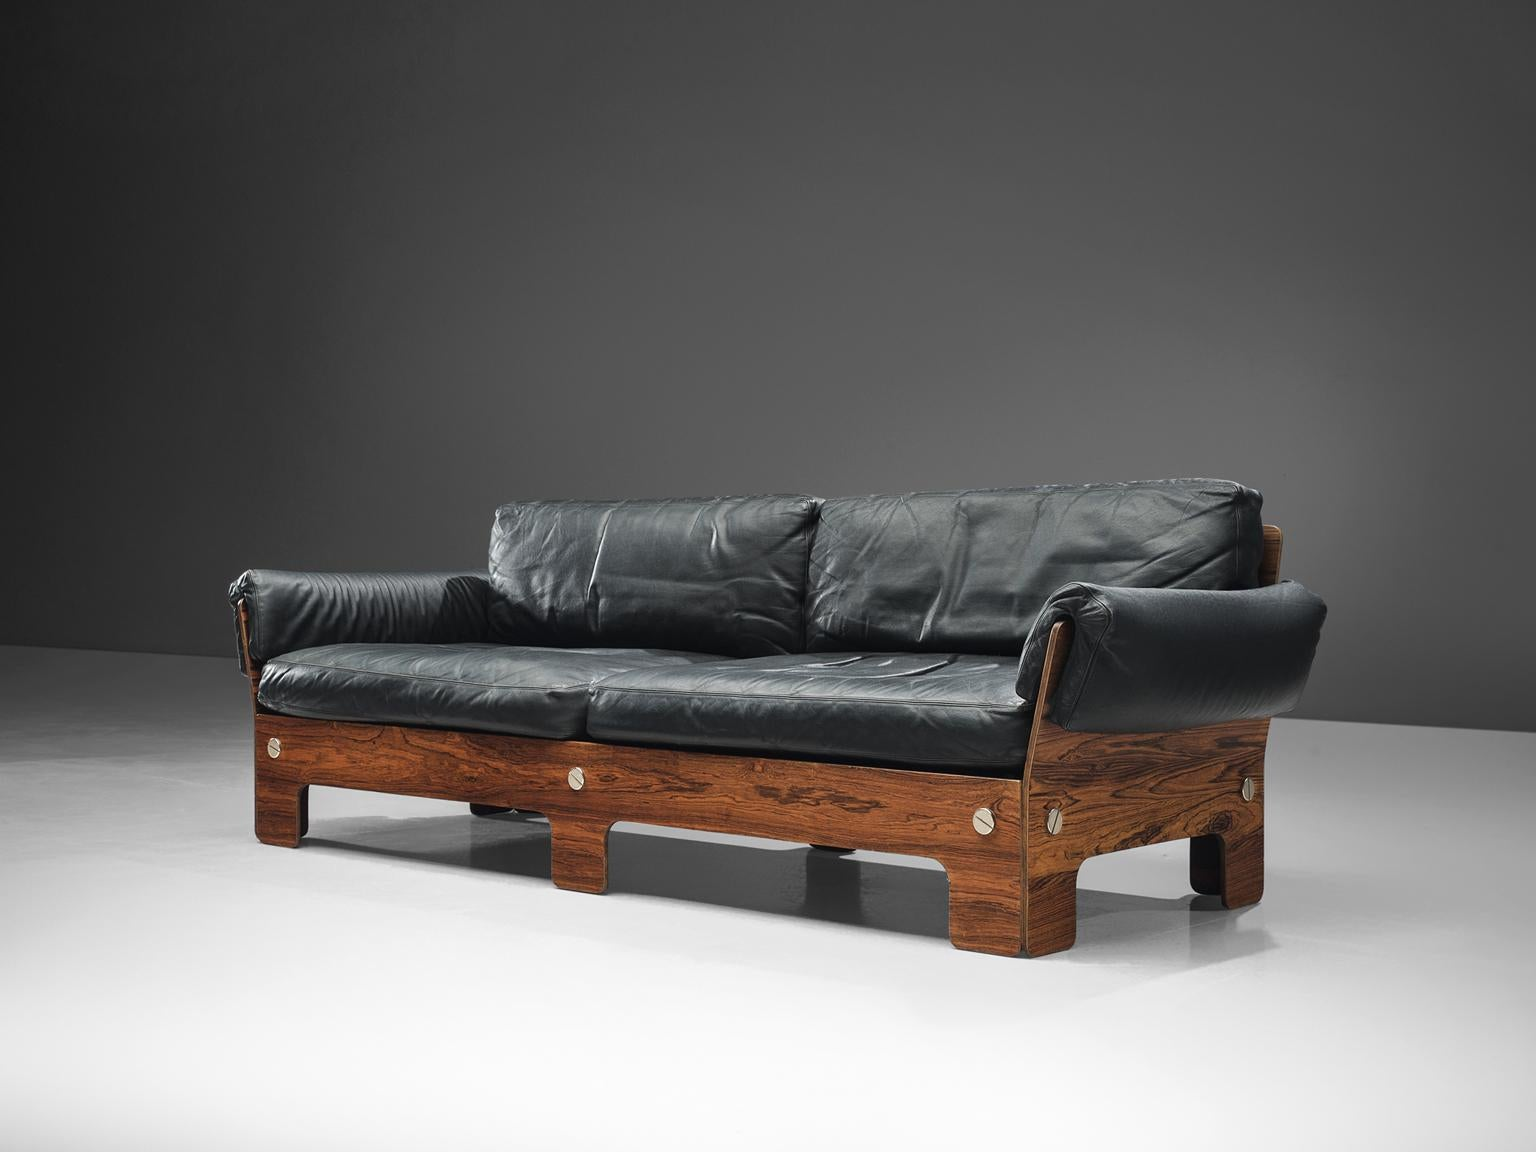 Sofa, Rosewood And Black Leather, Norway, 1960s This Sofa Presents Very  Comfortable Elements